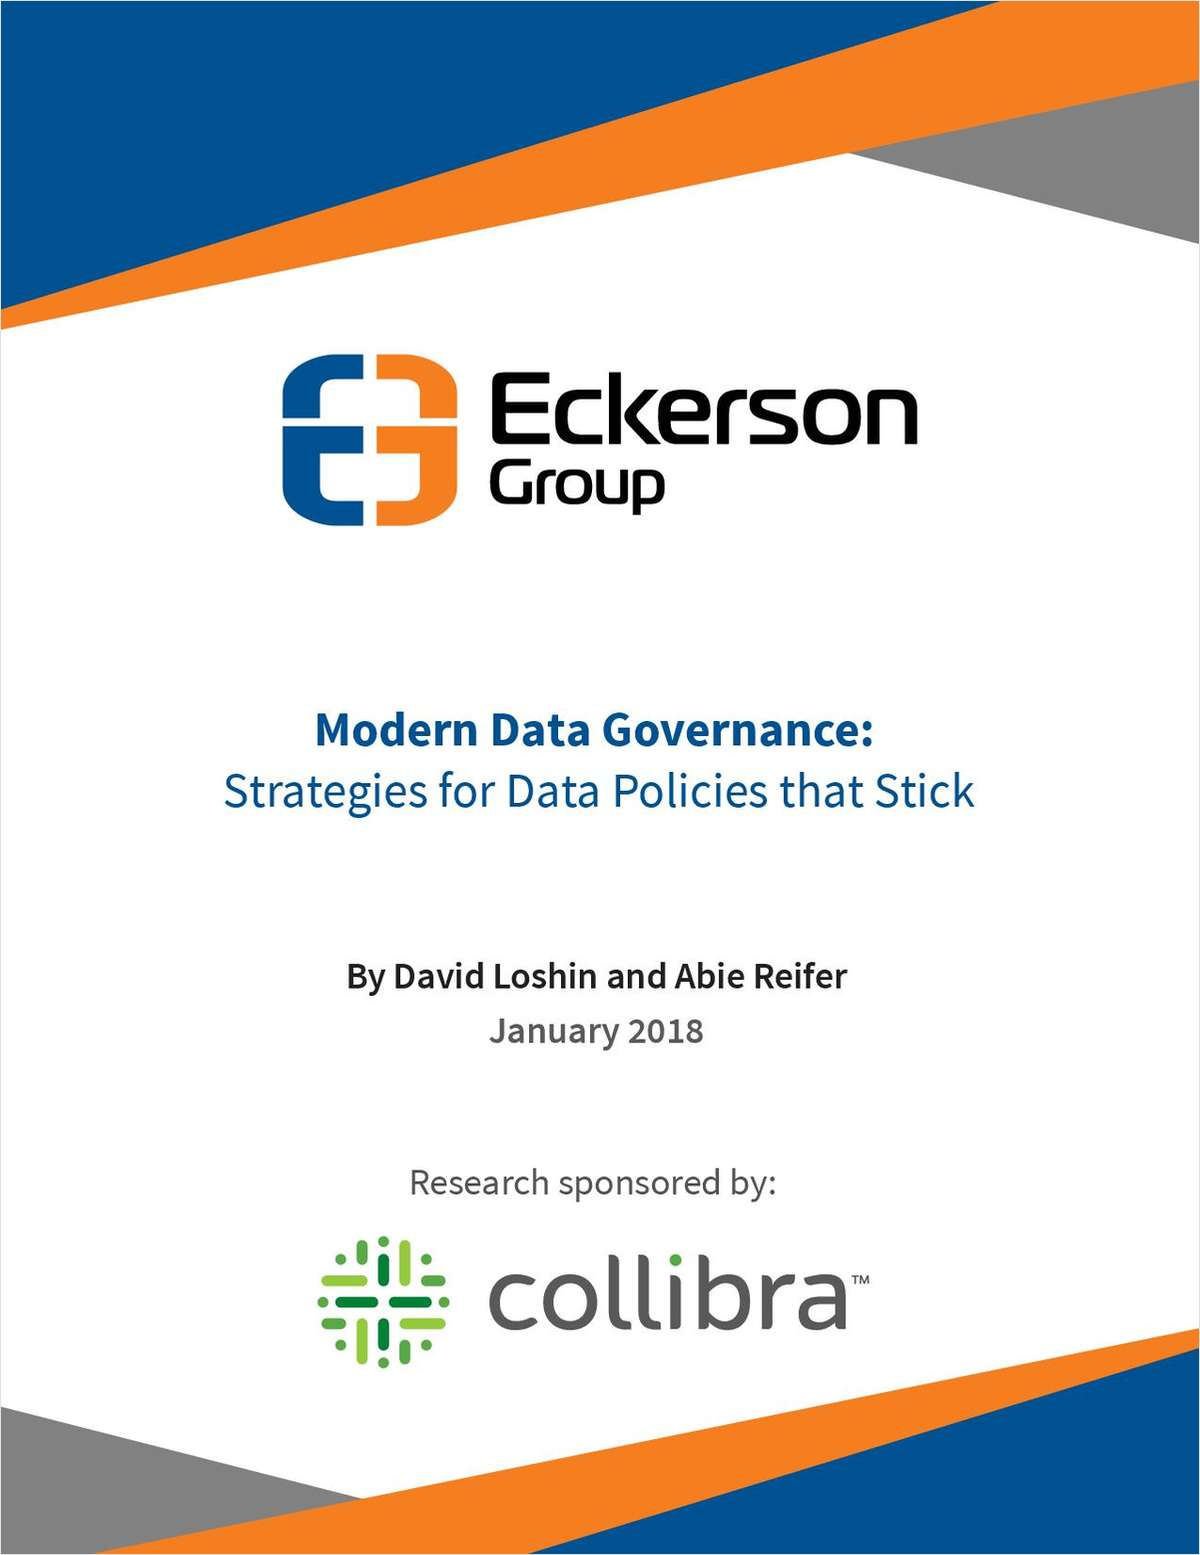 Modern Data Governance: Strategies for Data Policies that Stick